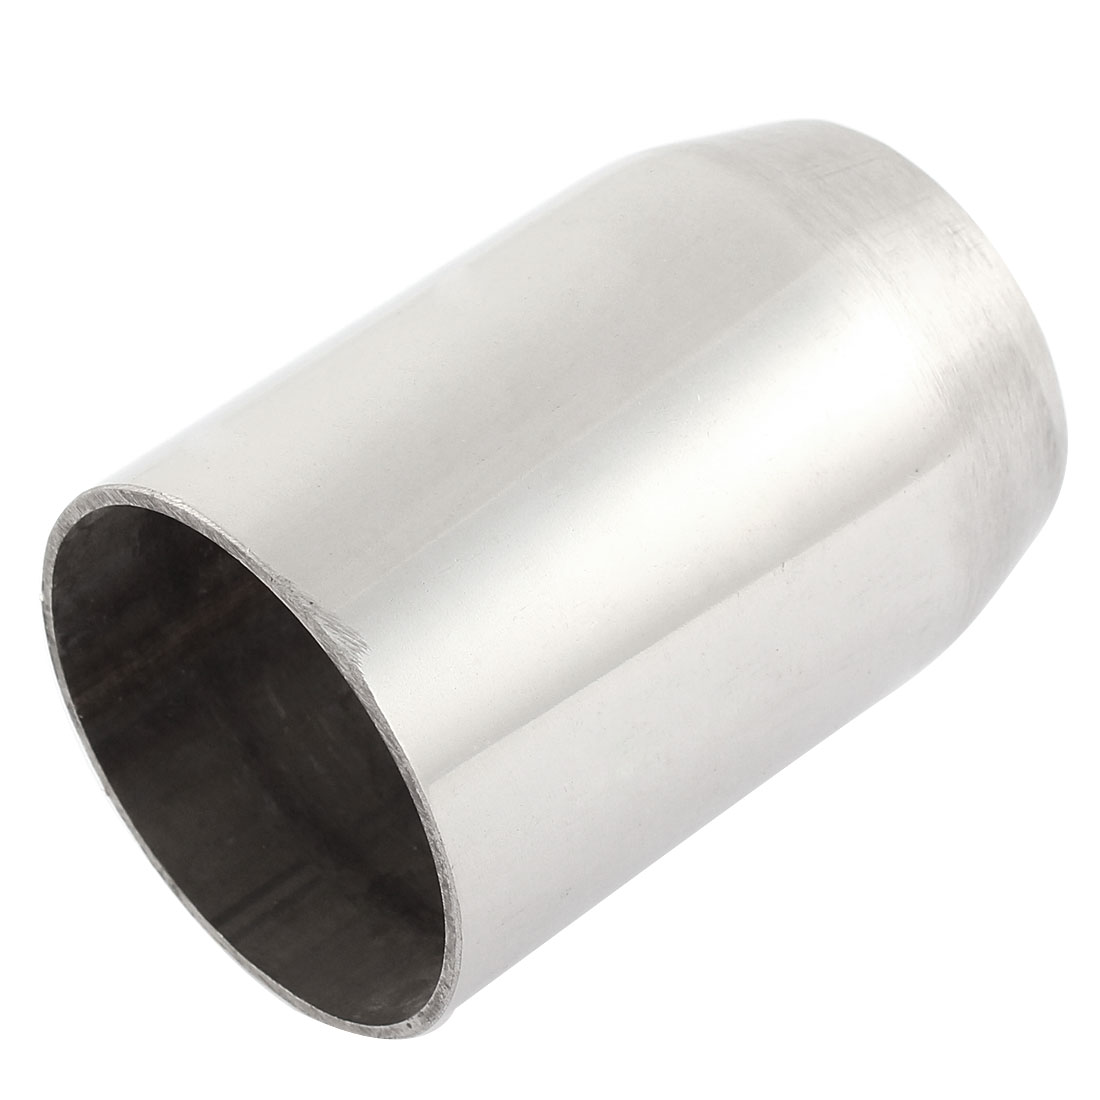 4.8cm Dia Sliver Tone Exhaust Muffler Adapter Connentor for Motorcycle